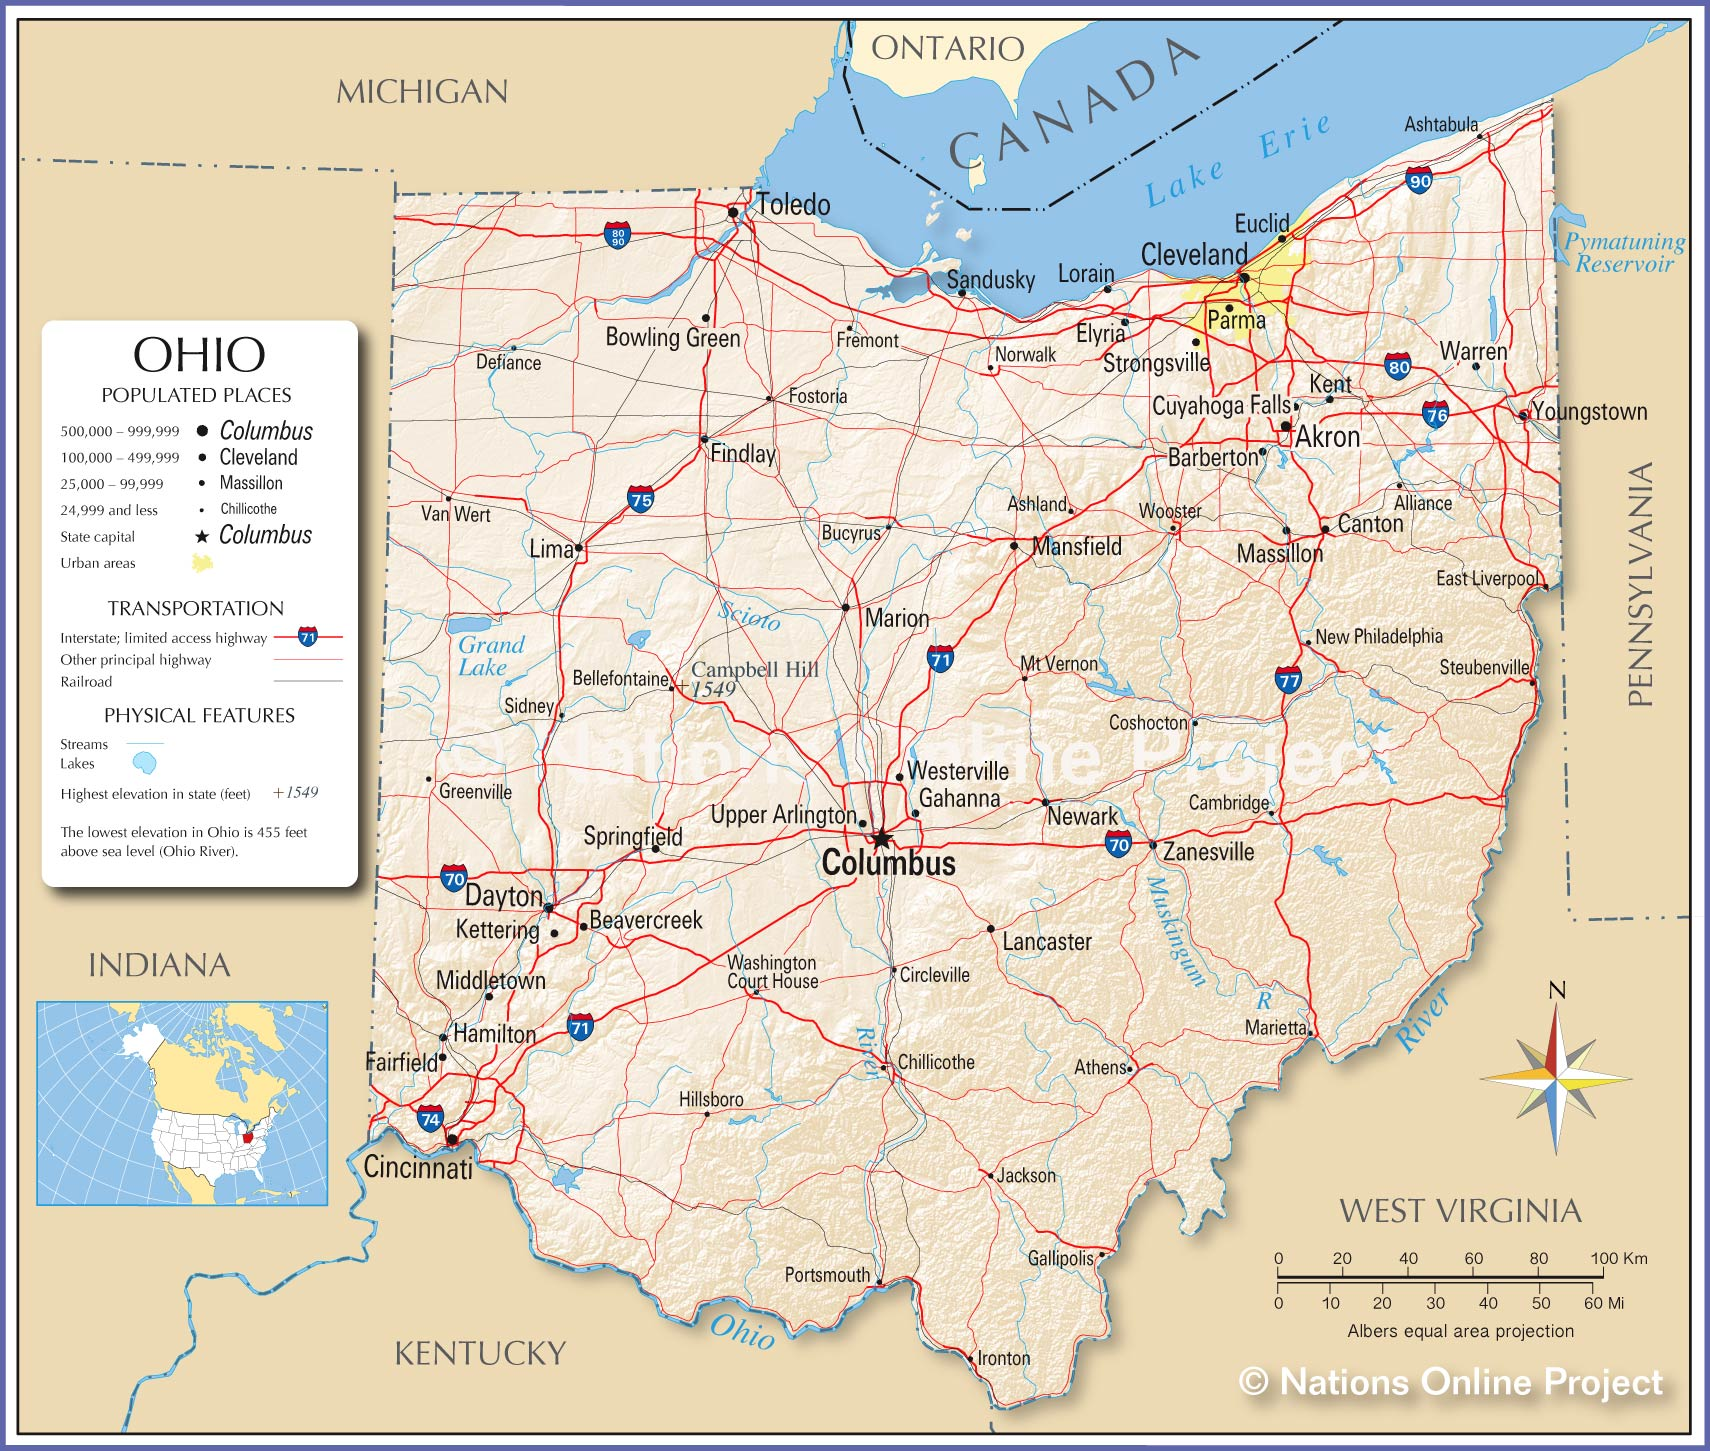 Reference Map Of Ohio USA Nations Online Project - Cleveland ohio usa map